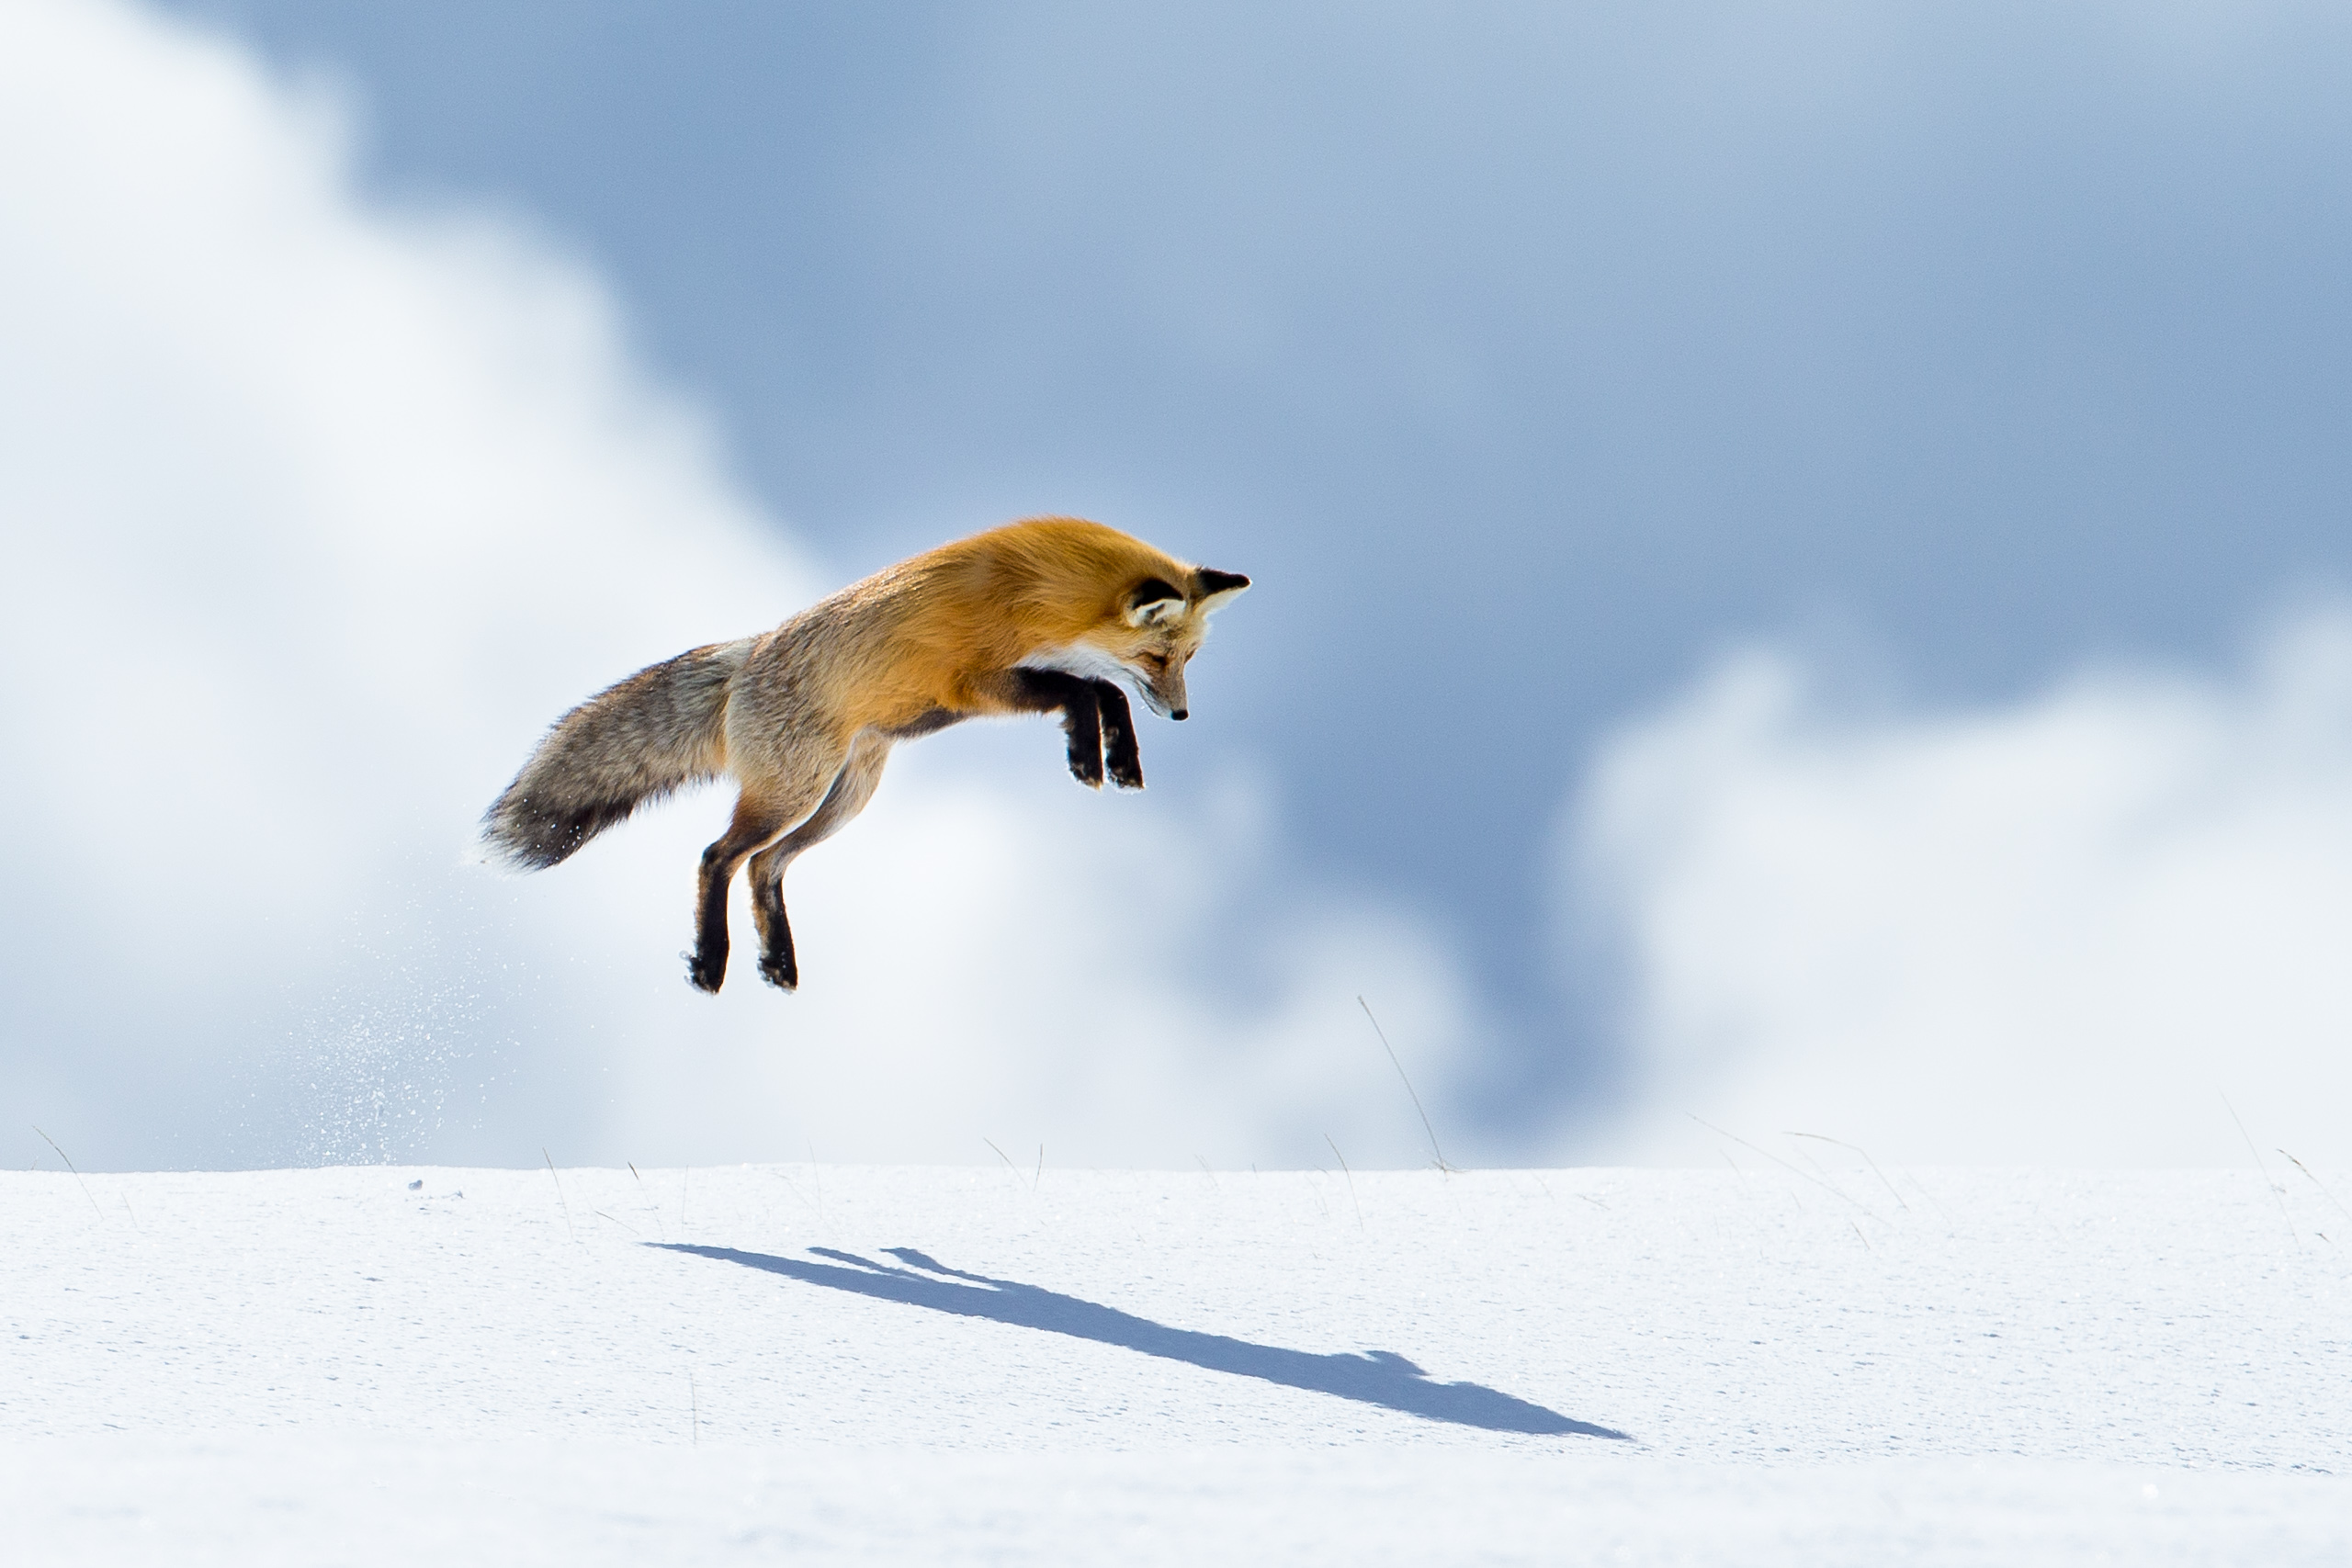 Peter Pan and His Shadow, Fox mousing jump, Yellowstone National Park, 2015.